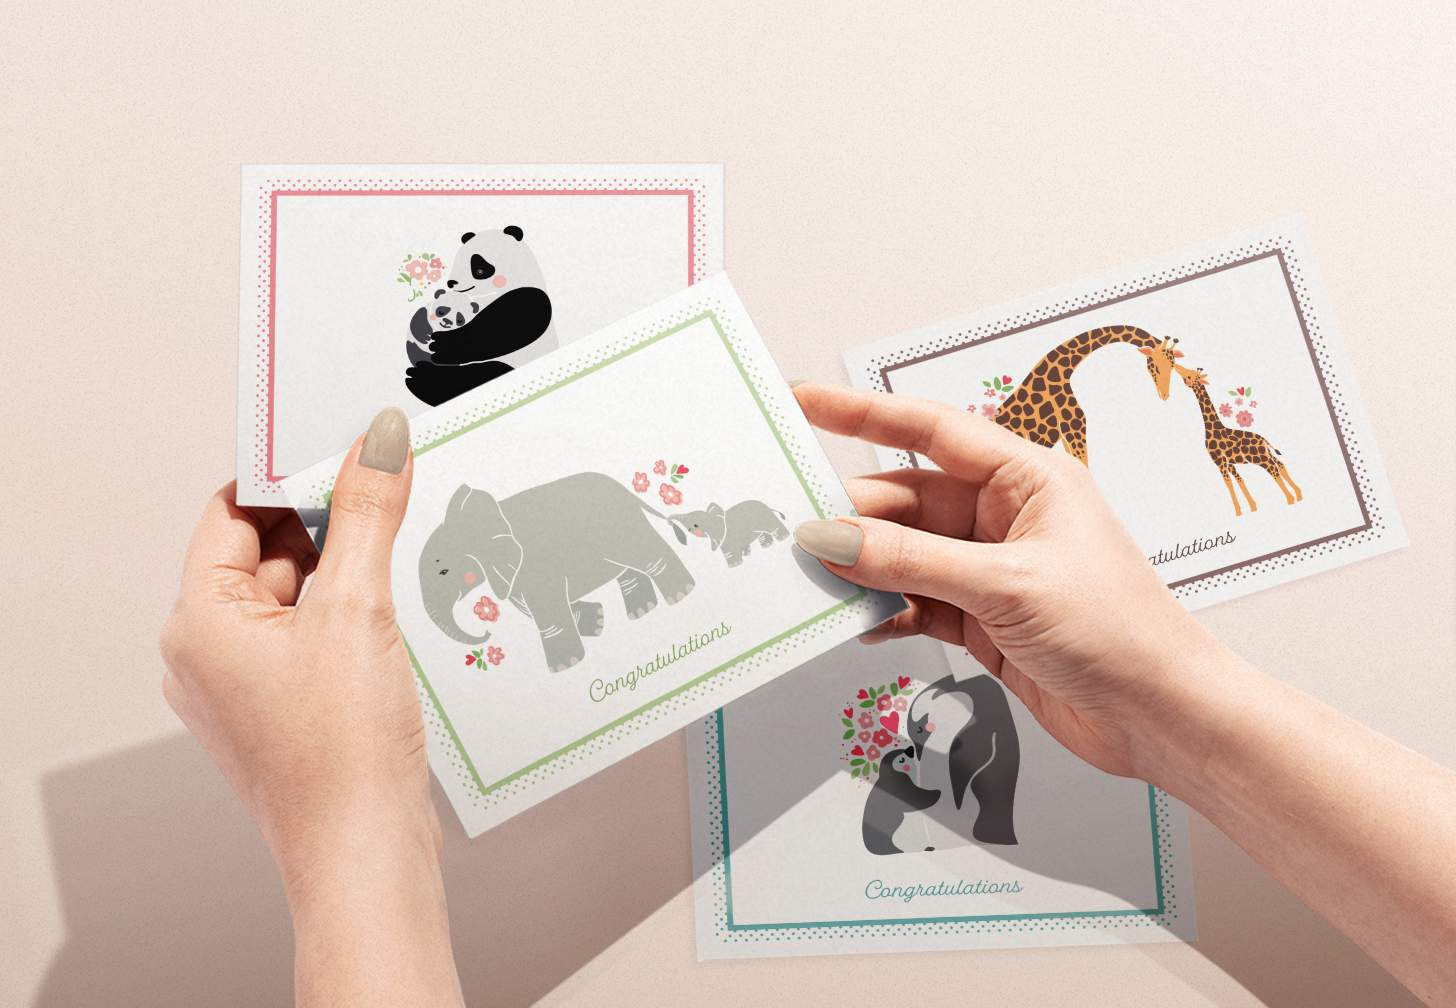 Woman's hands holding a card with mother and baby elephant design along with giraffe, panda, and penguin designs